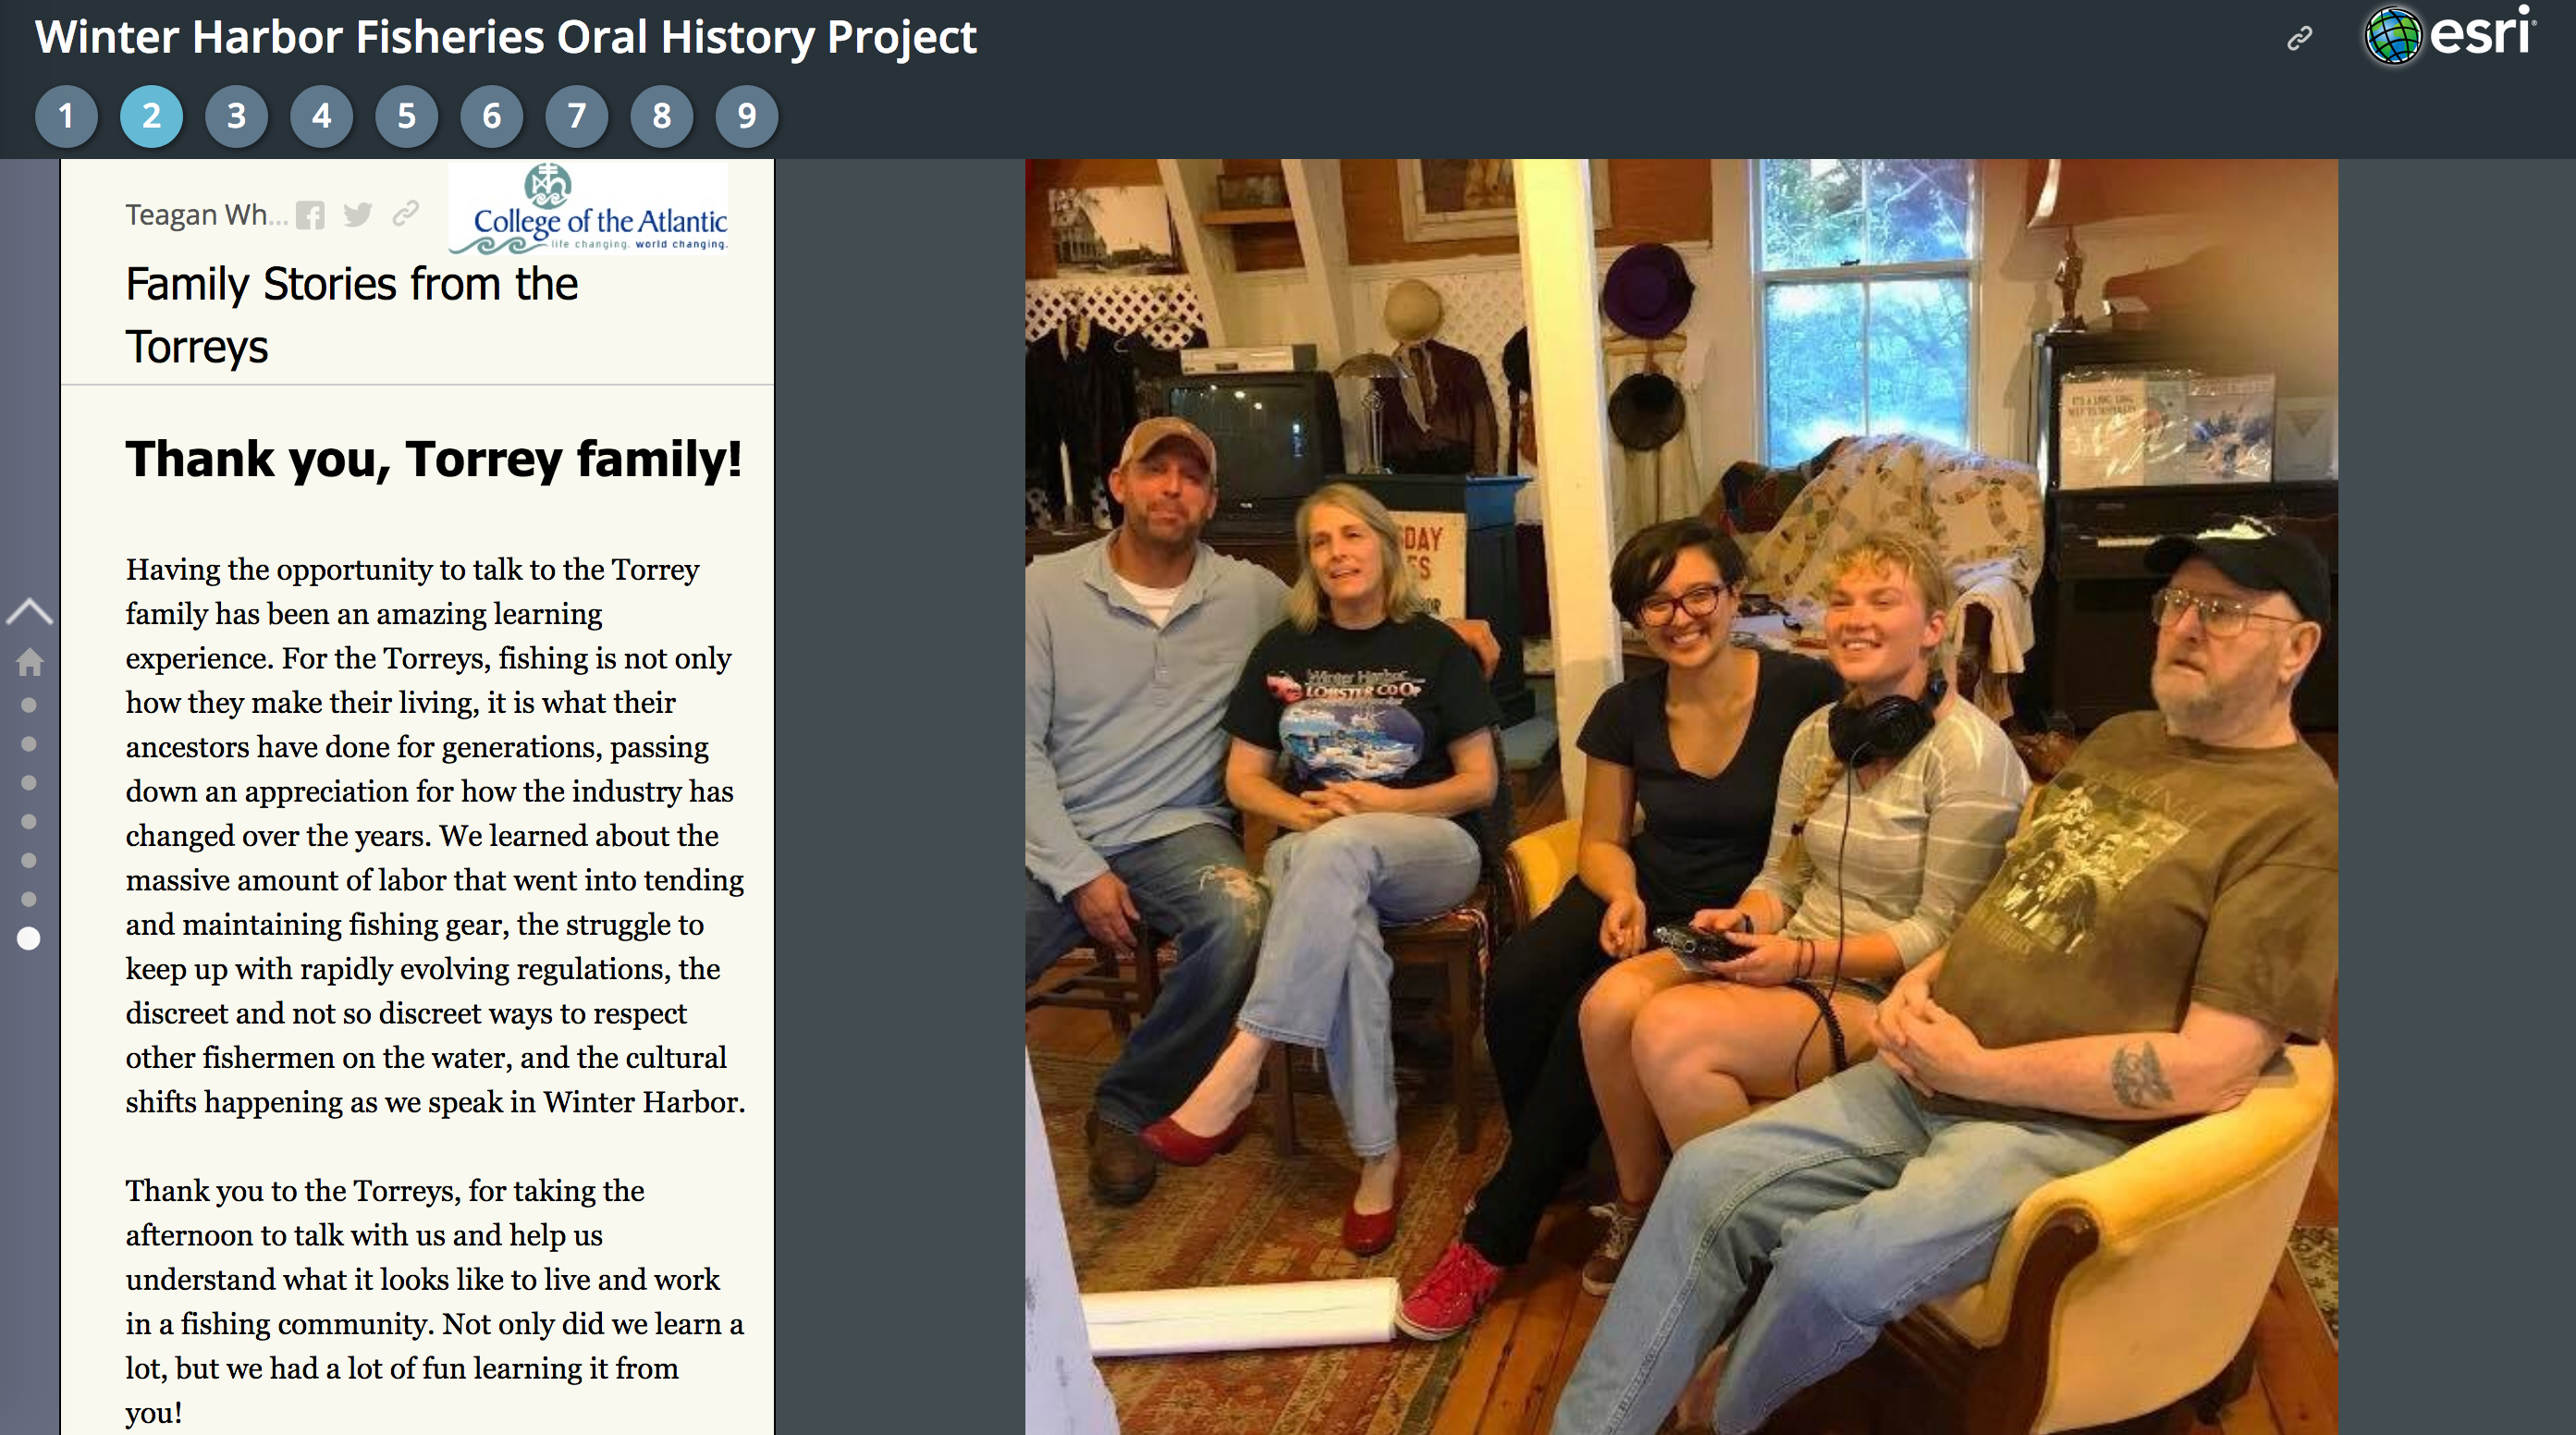 A screen capture of the Winter Harbor Oral Fisheries History Project showing the Torrey family photo beside an article